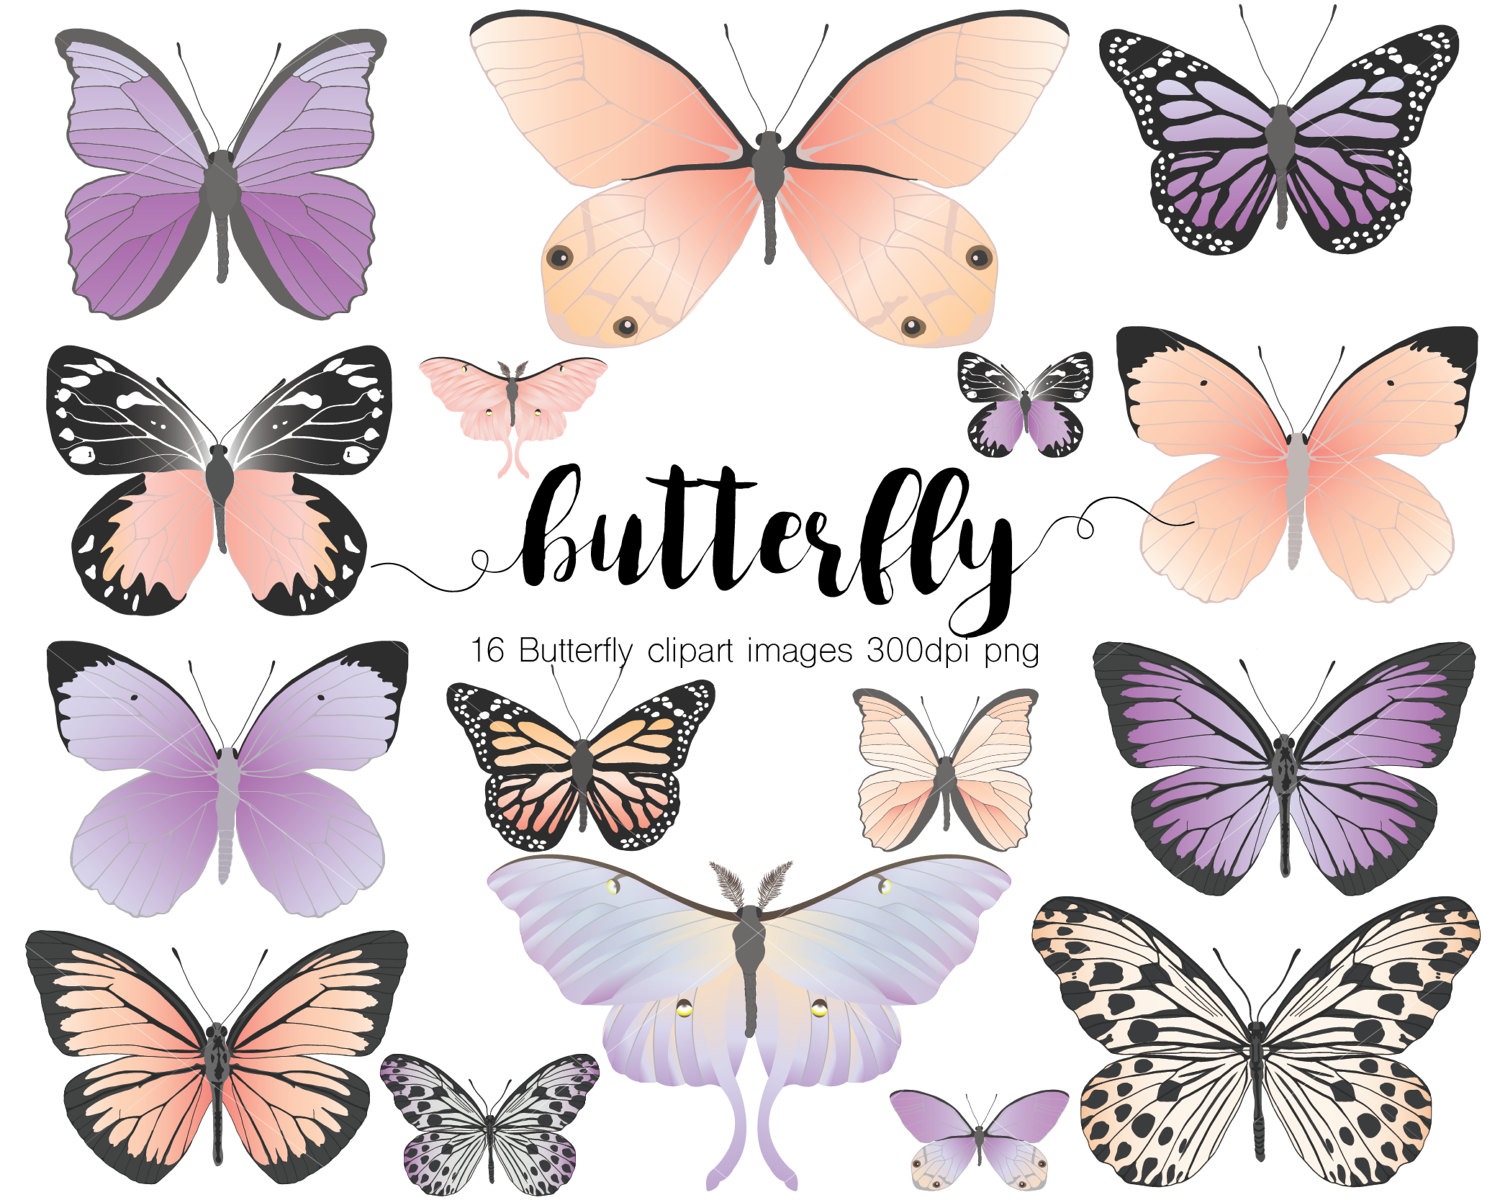 Peach clipart butterfly Dpi digital a from